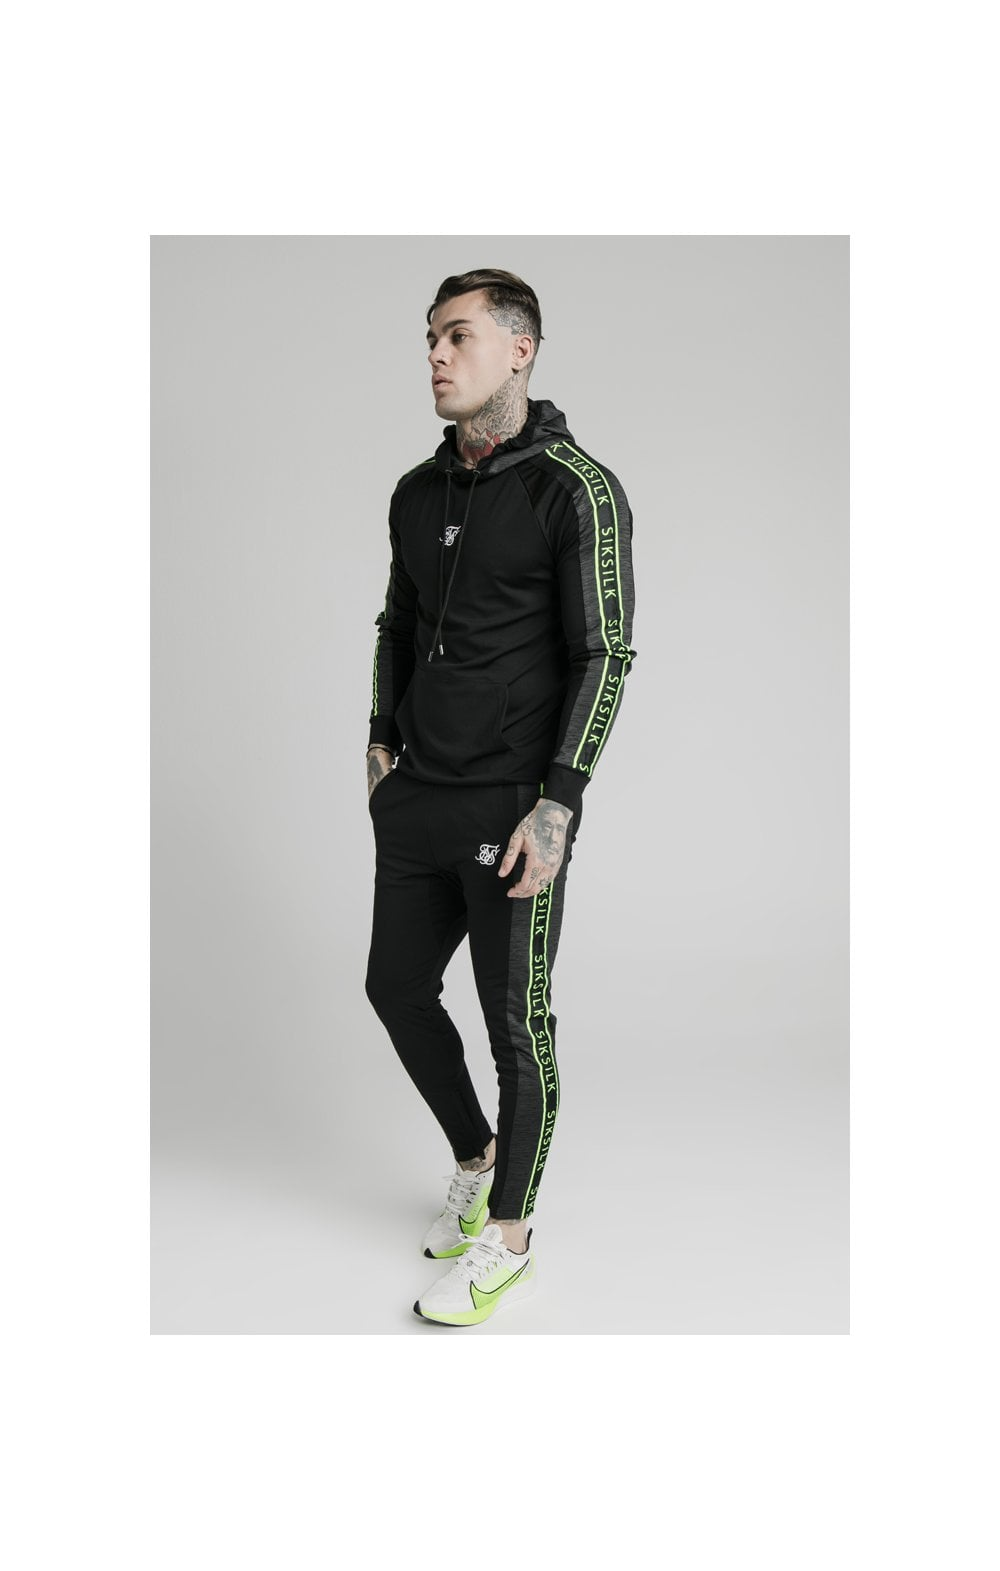 Load image into Gallery viewer, SikSilk Hyper Vapour Overhead Tape Hoodie - Black & Neon Fluro (4)